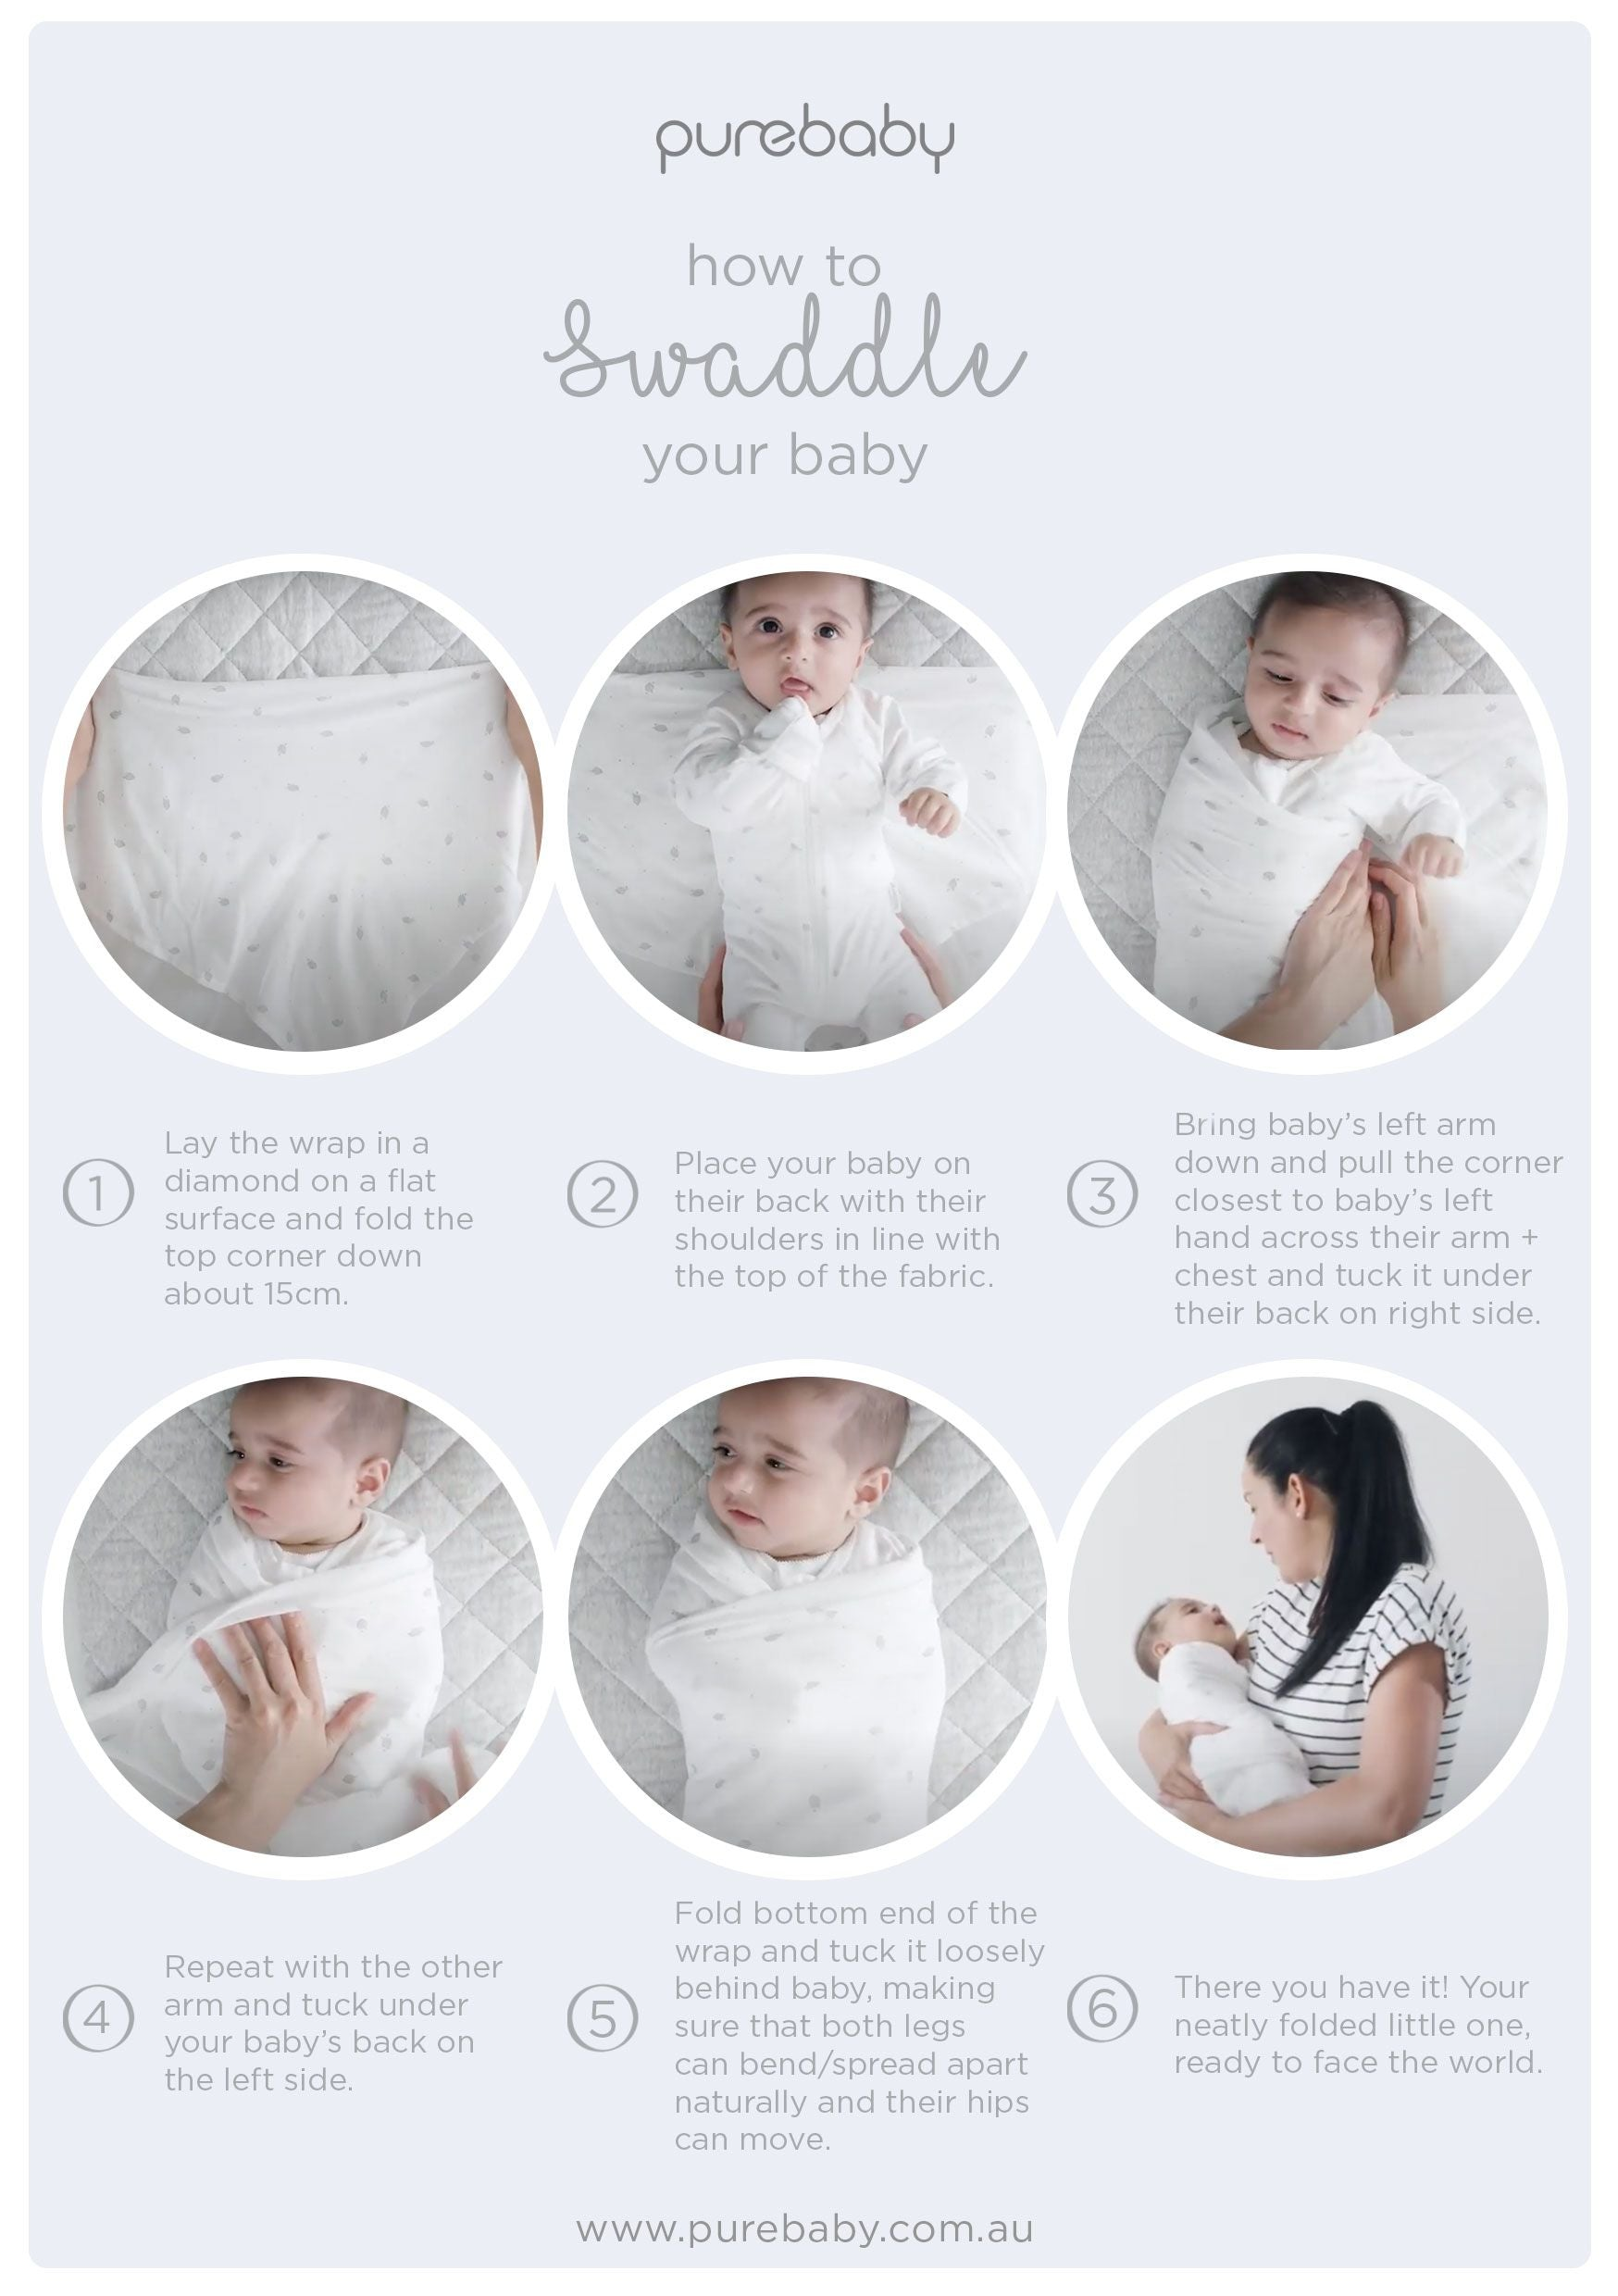 Purebaby How to Swaddle a Baby